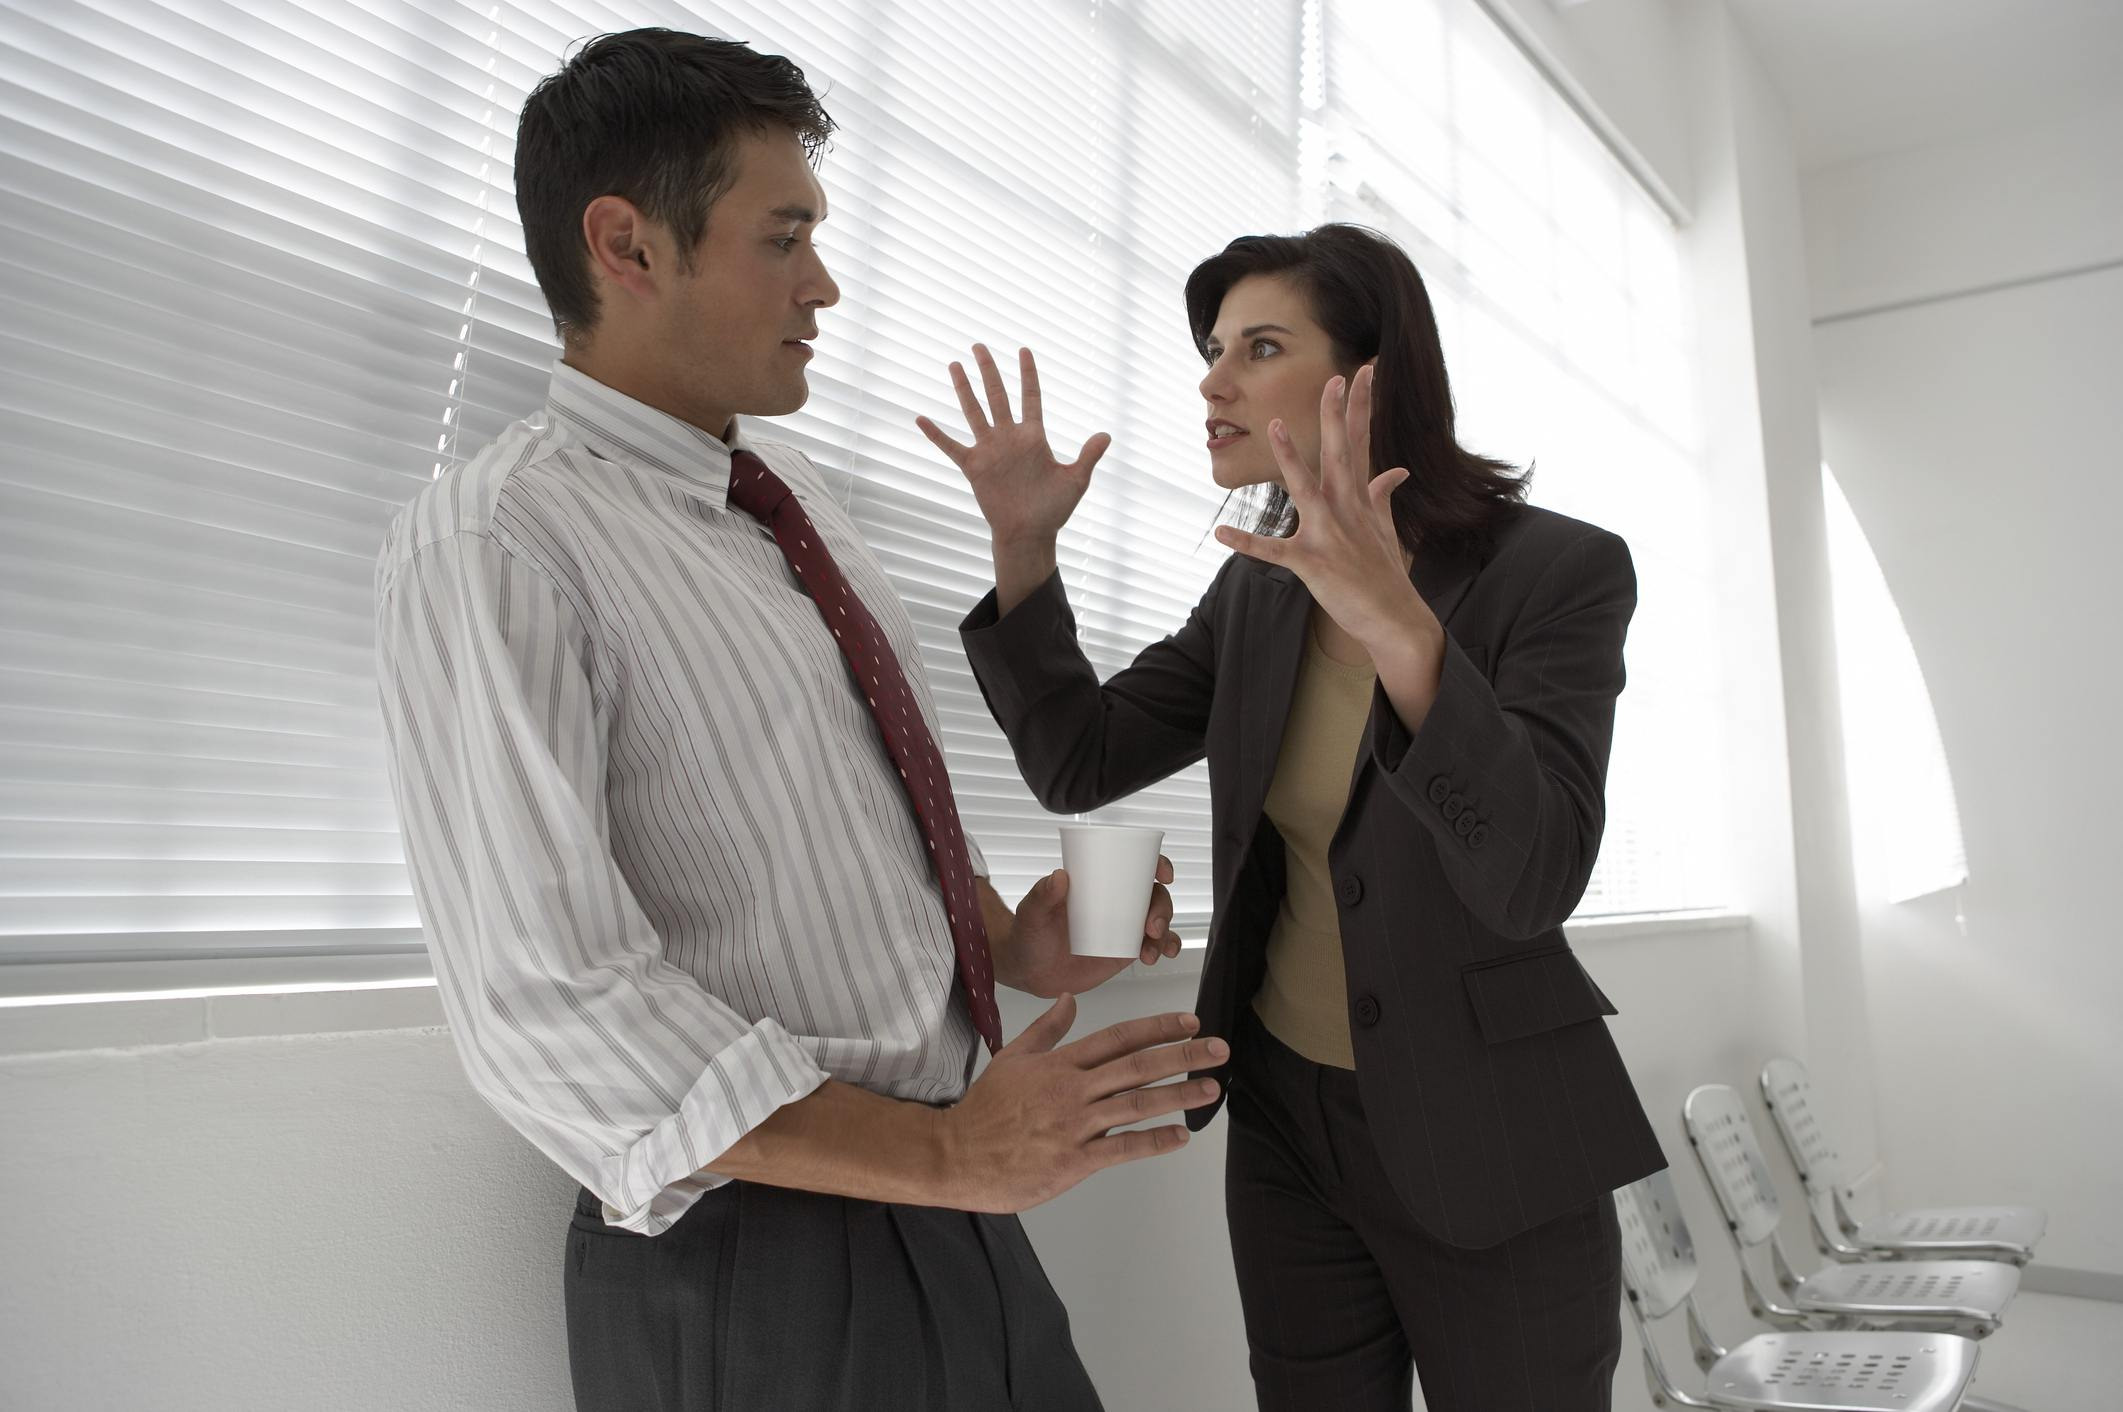 Angry Businesswoman yelling at a businessman